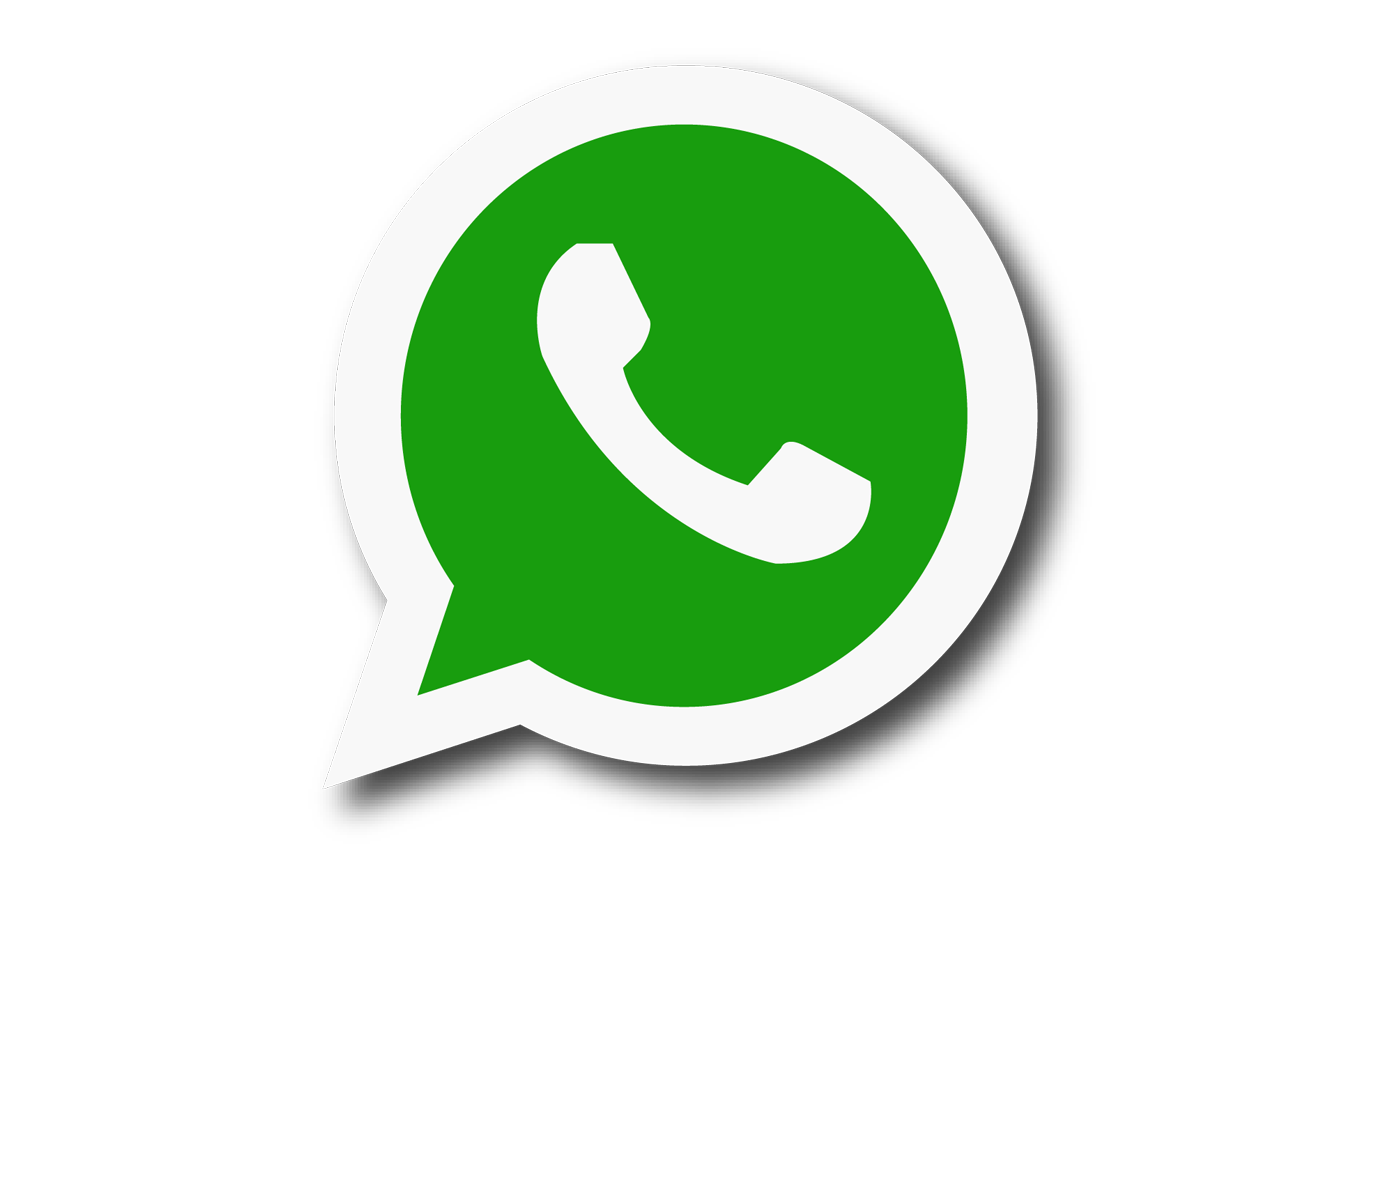 Logo whatsapp png. Transparent images pluspng image